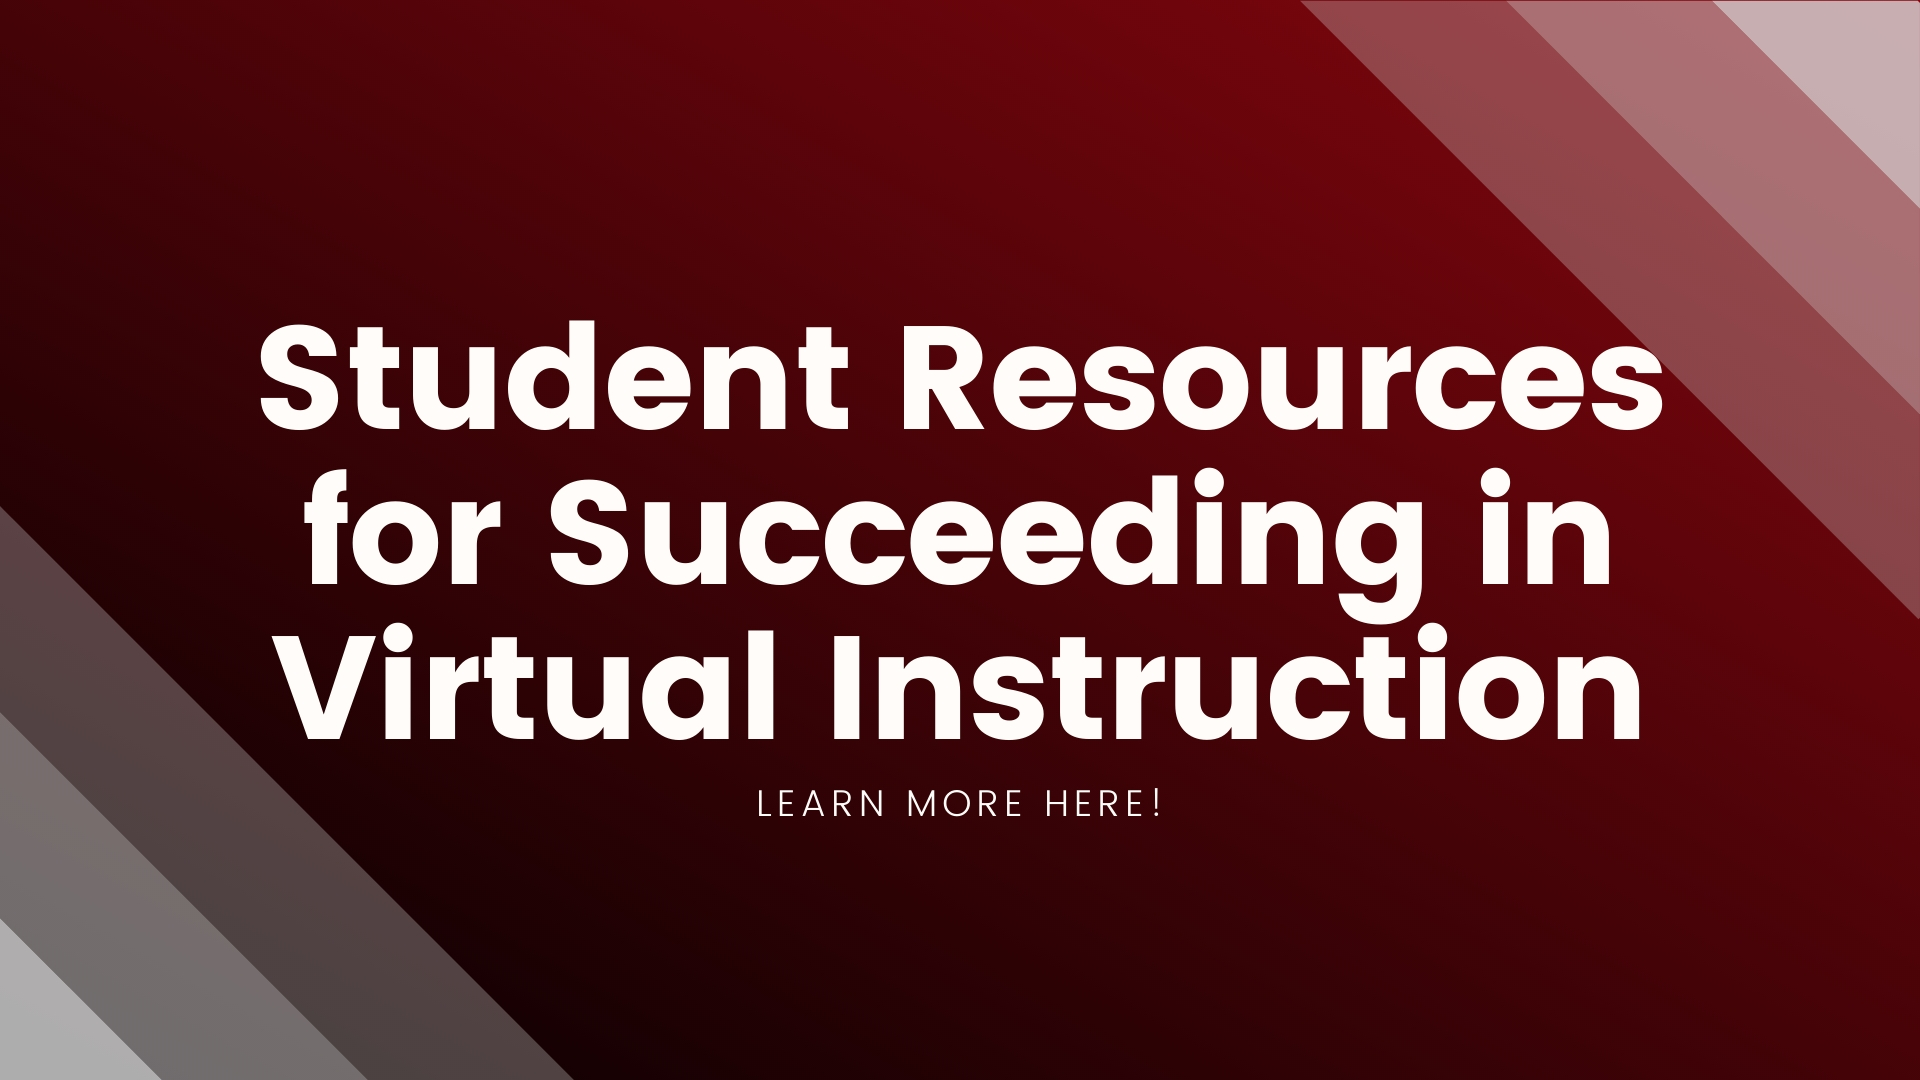 Graphic button leading students to resources for virtual instruction